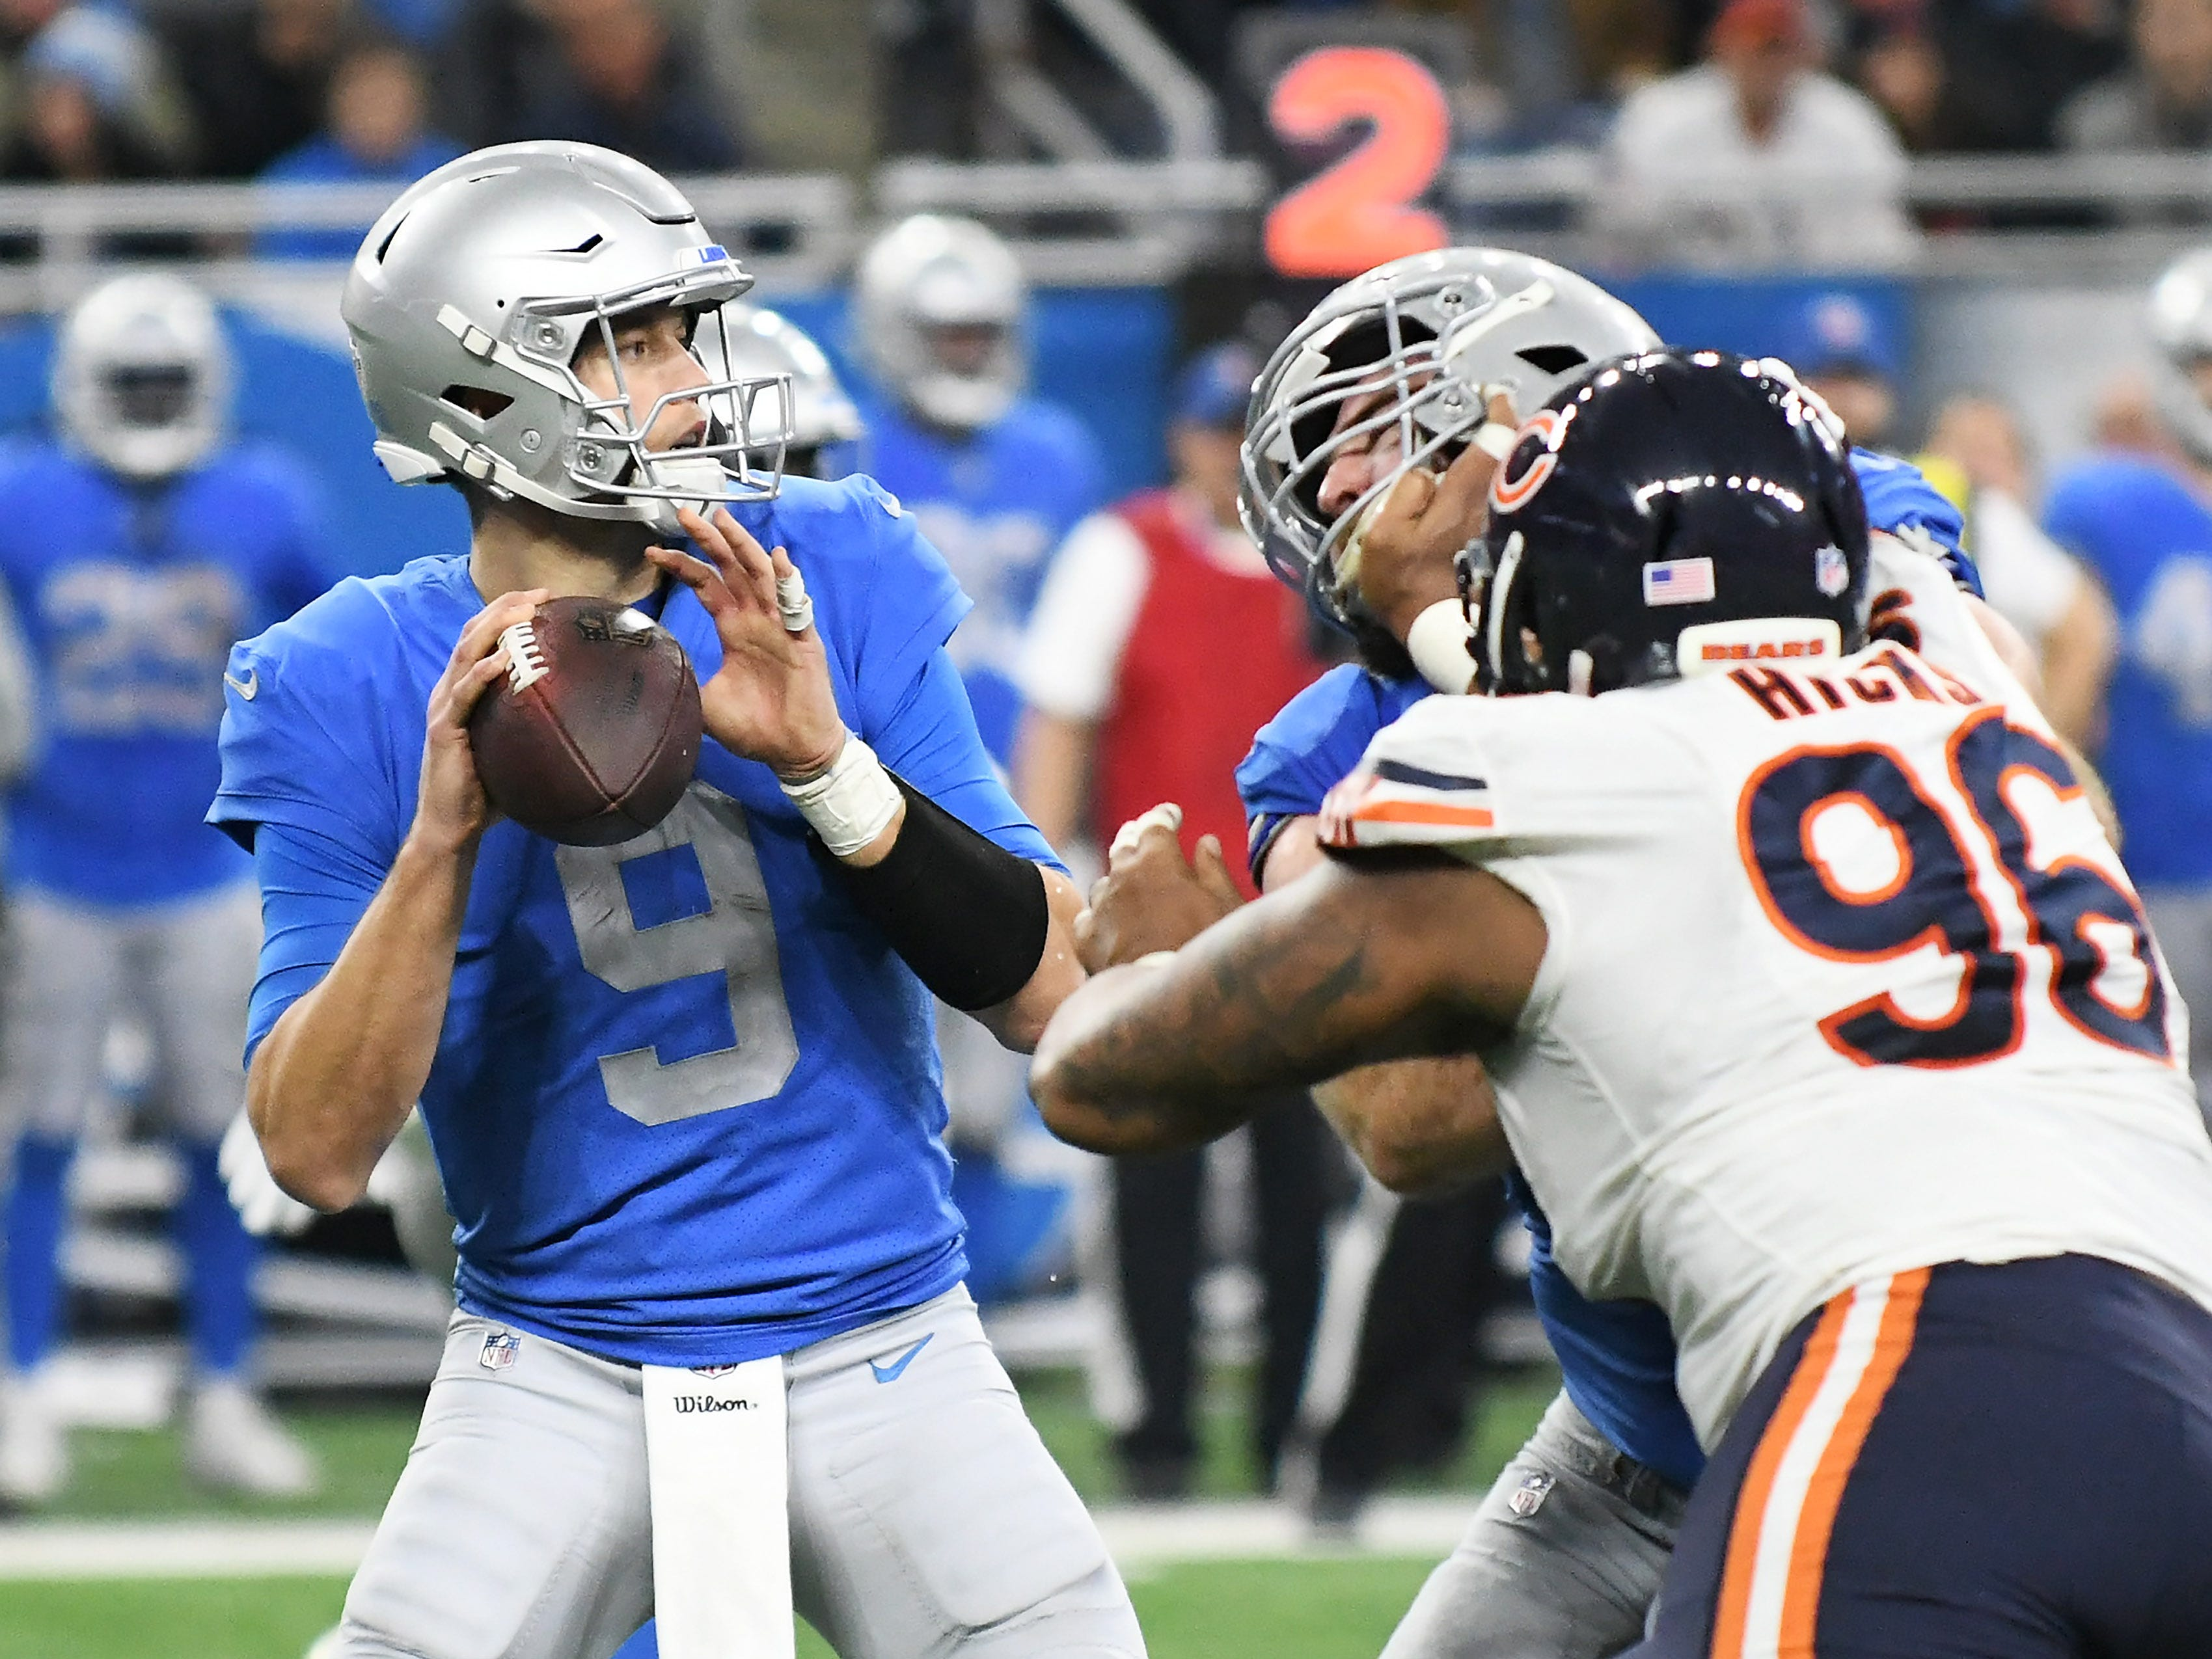 Lions quarterback Matthew Stafford looks to pass the ball In the fourth quarter.  Detroit Lions vs Chicago Bears on Thanksgiving Day at Ford Field in Detroit on Nov. 22, 2018.  Bears win, 23-16.(Robin Buckson / Detroit News)